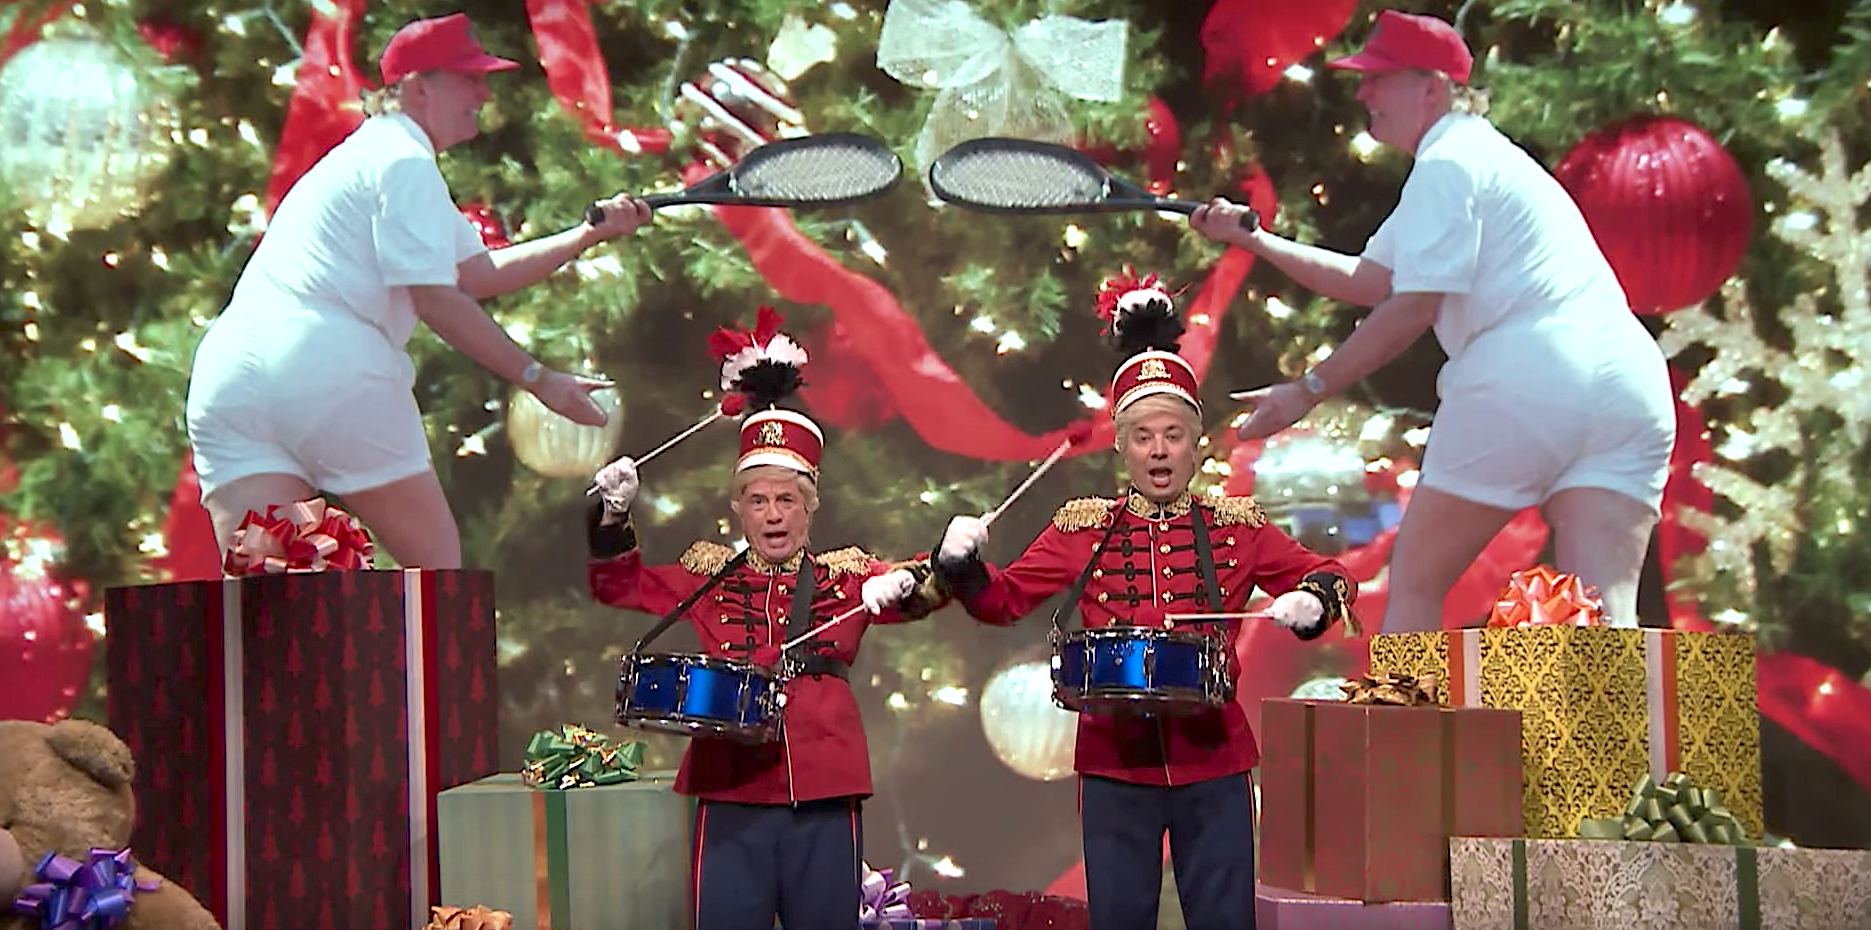 Jimmy Fallon And Martin Short Give Classic Christmas Song A Scary ...